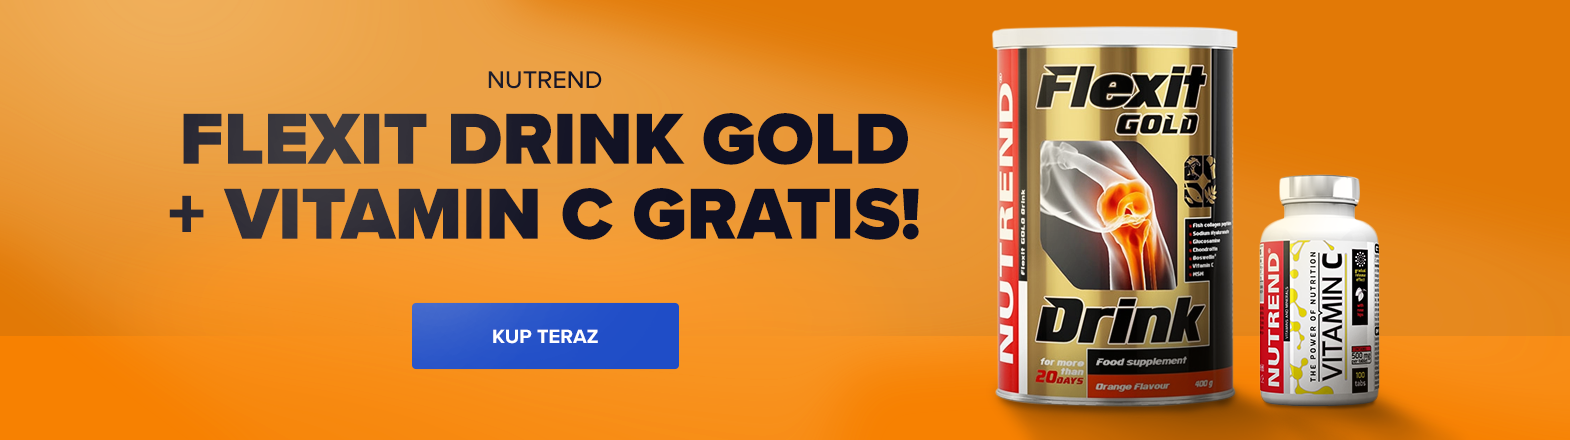 Nutrend Flexit Drink GOLD + Vitamin C [GRATIS]